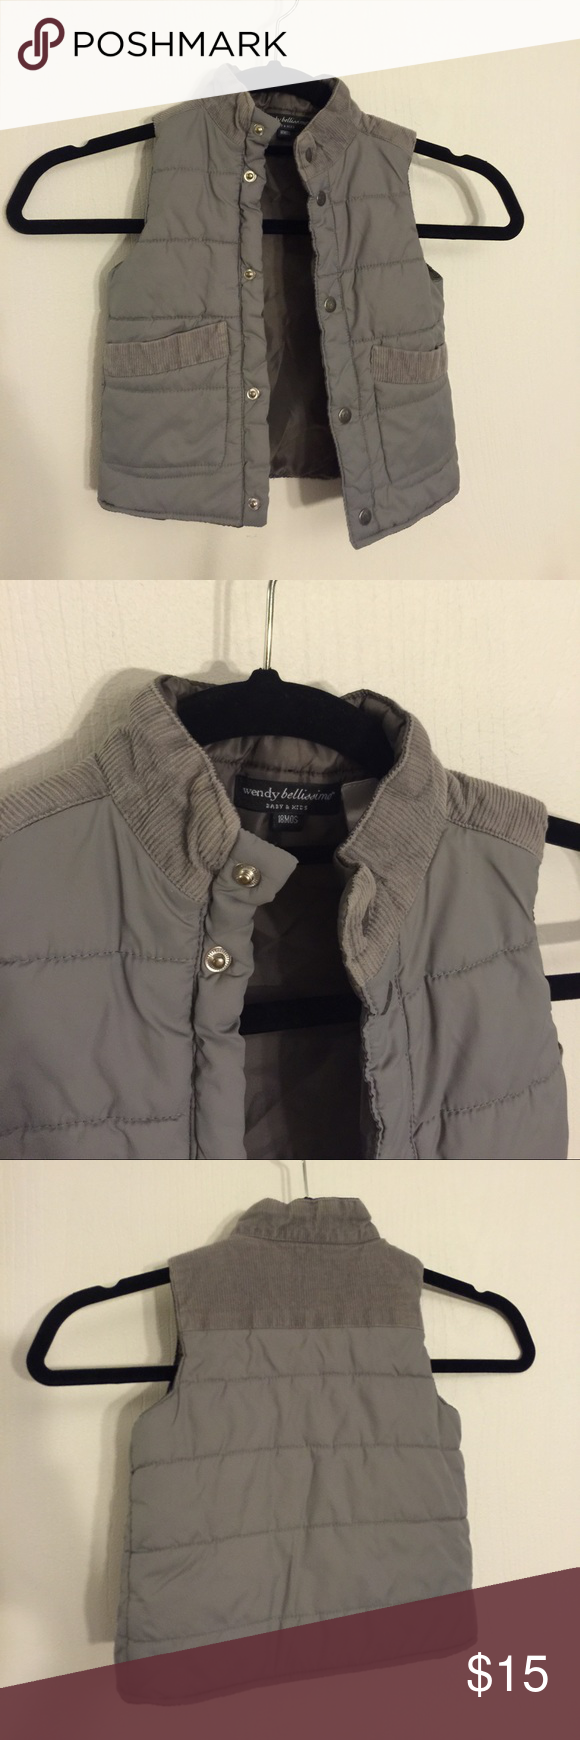 Gray Puffer Vest So in love. Wendy Bellissimo puffer vest with corduroy details and pockets. Snap button closure. Excellent used condition. Looks new. Size 18 months. Wendy Bellissimo Jackets & Coats Vests